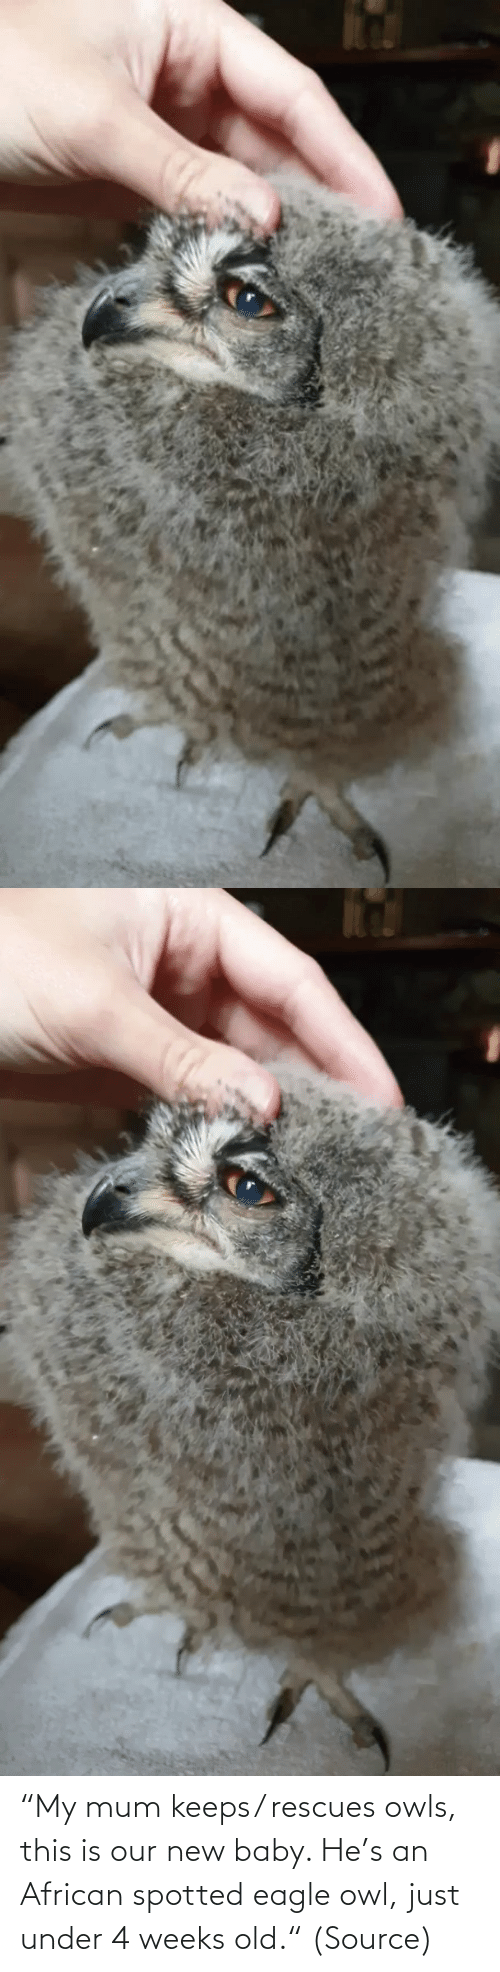 "S: ""My mum keeps/ rescues owls, this is our new baby. He's an African spotted eagle owl, just under 4 weeks old."" (Source)"